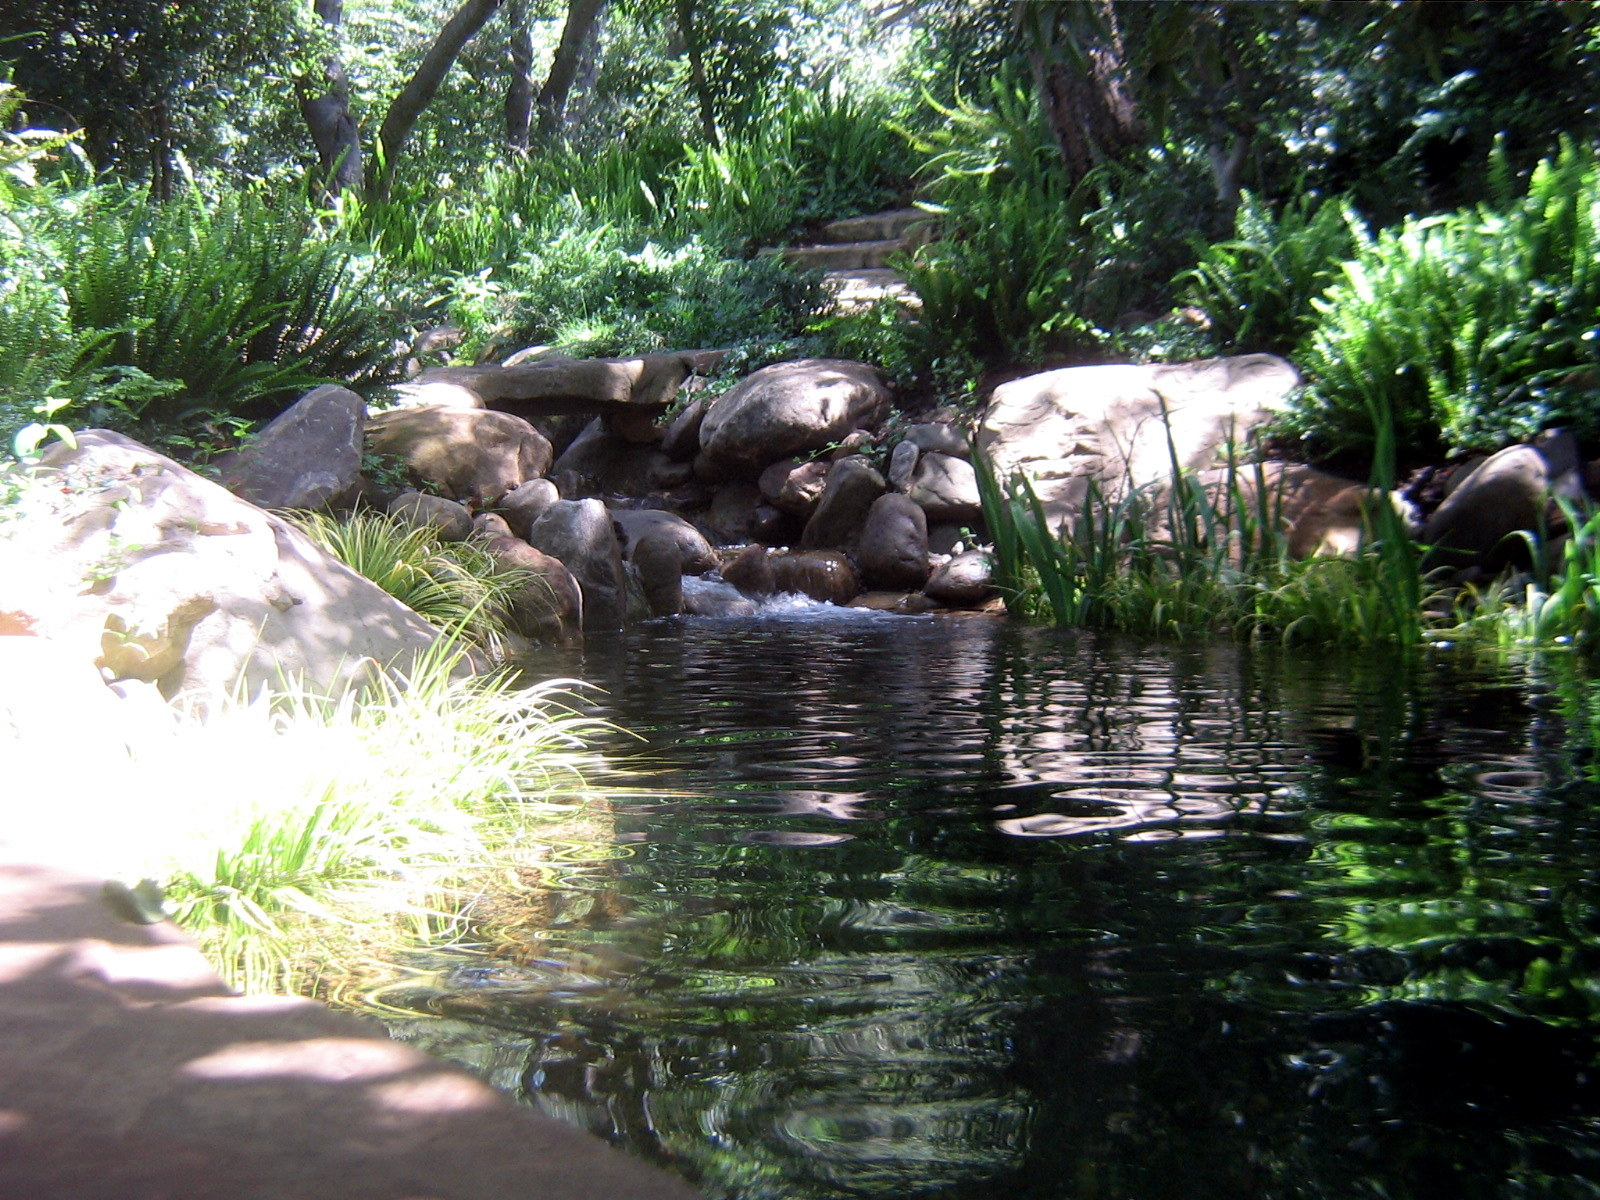 Santa barbara koi ponds garcia rock and water design blog for Koi pond photos